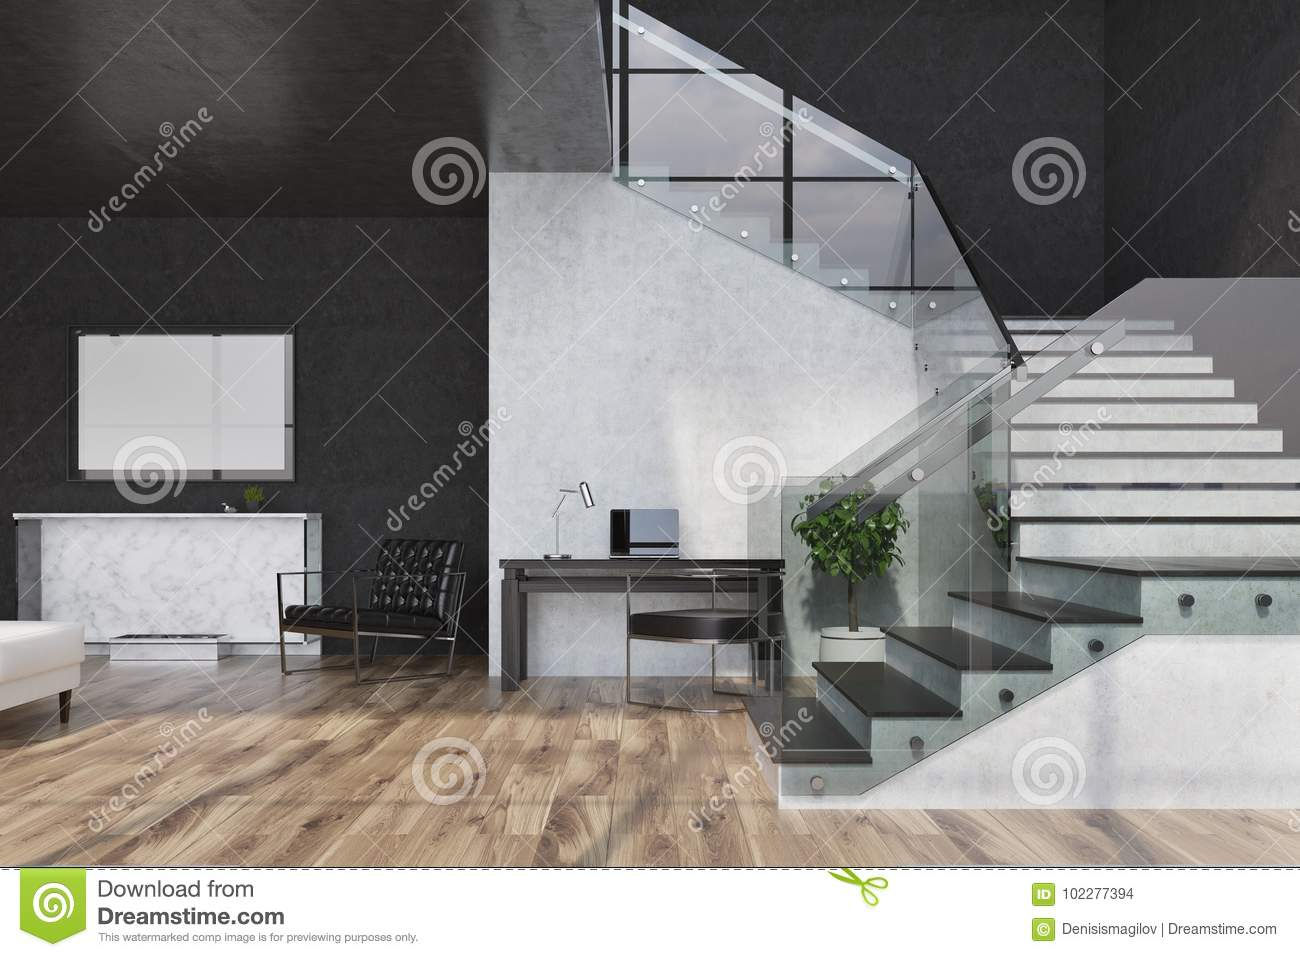 Black Marble Living Room Fireplace And Poster Stock Illustration Illustration Of Lobby Hall 102277394